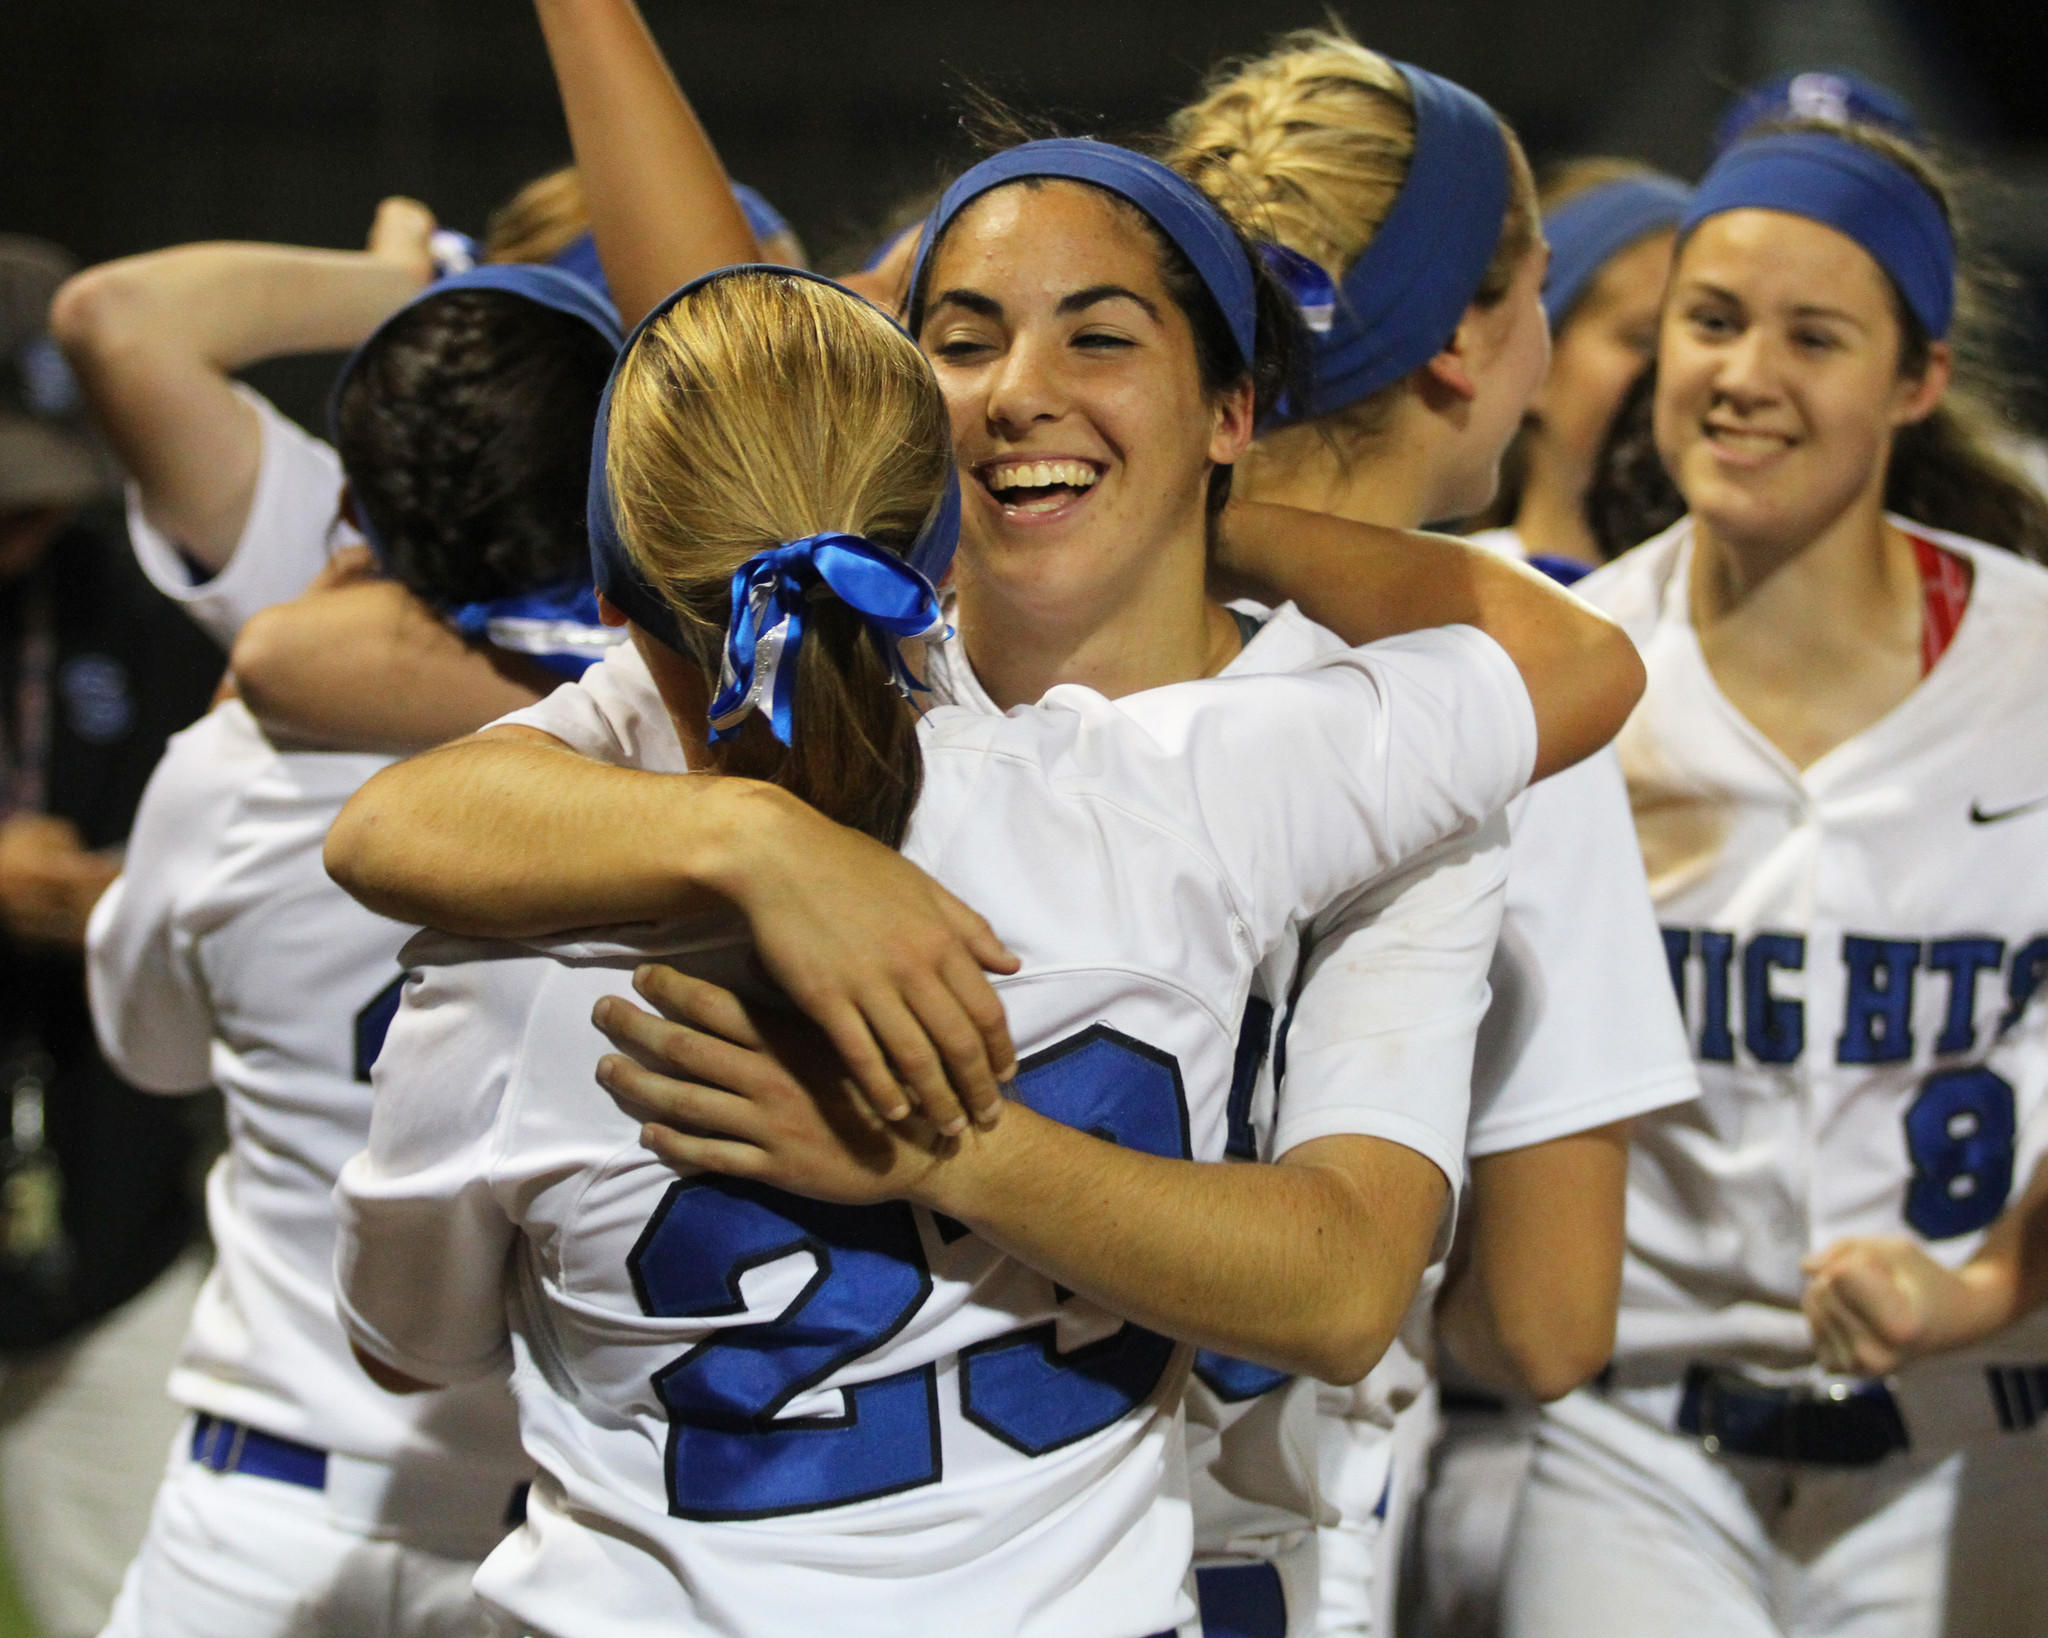 The Southington High softball team celebrates a 1-0, 15-inning win over Amity in the Class LL championship on Saturday night.